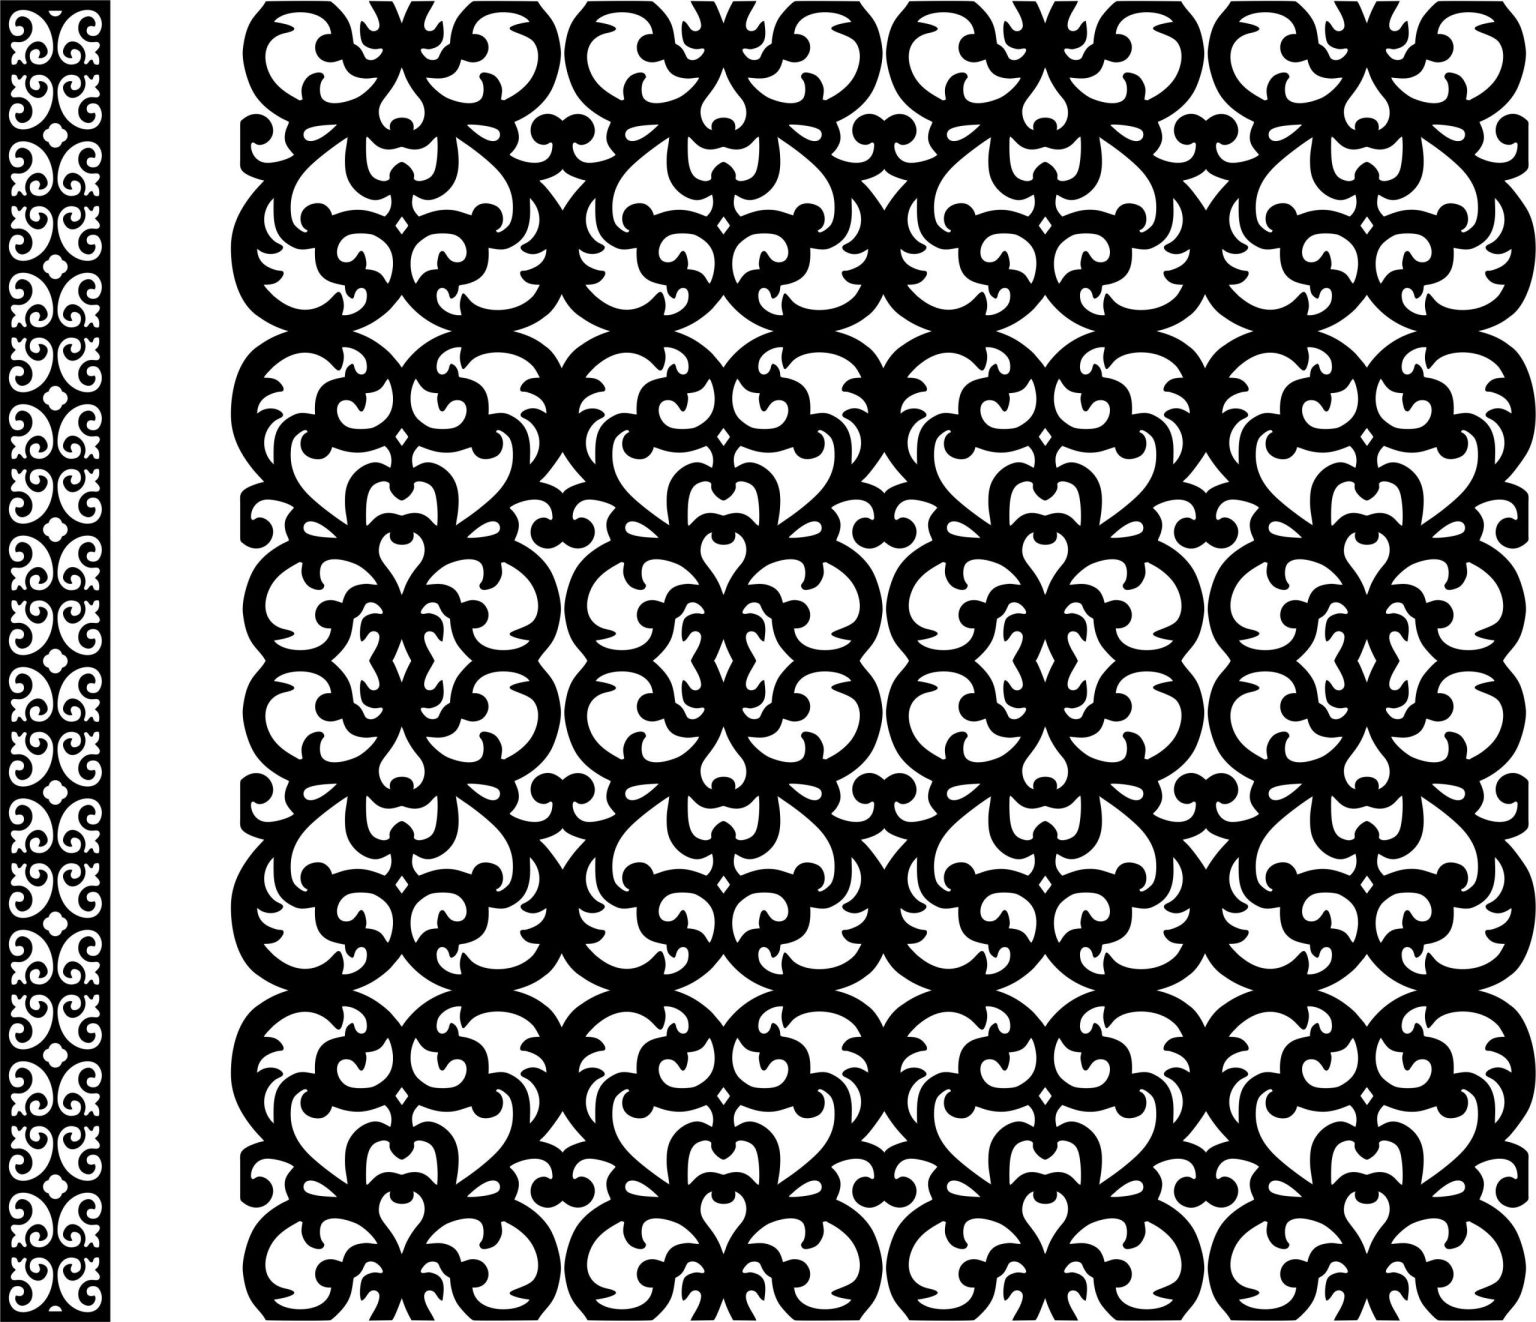 Decorative Screen Patterns For Laser Cutting 2 Free DXF File